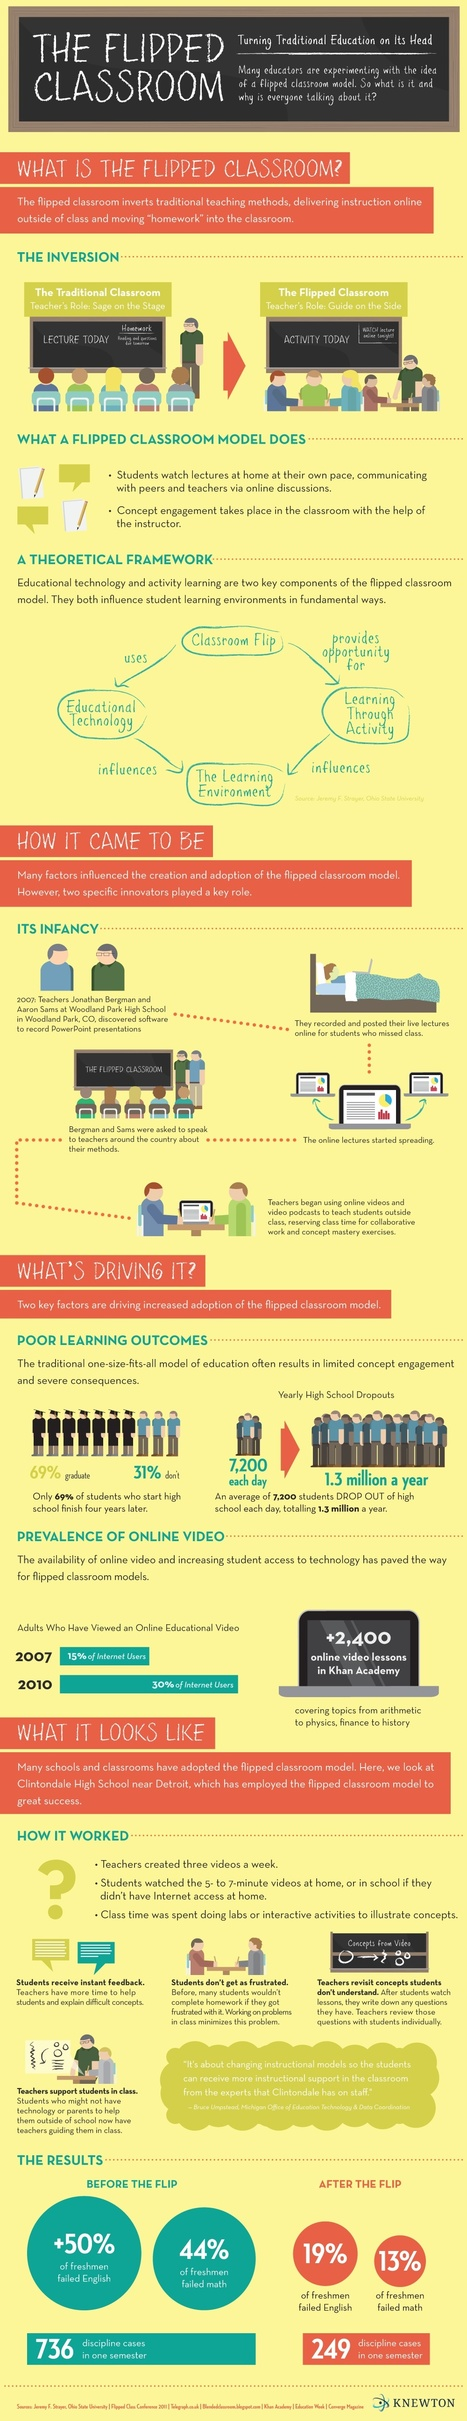 The Flipped Classroom Infographic #flippedclassroom #blendedlearning #edtech | The Flipped Classroom | Scoop.it